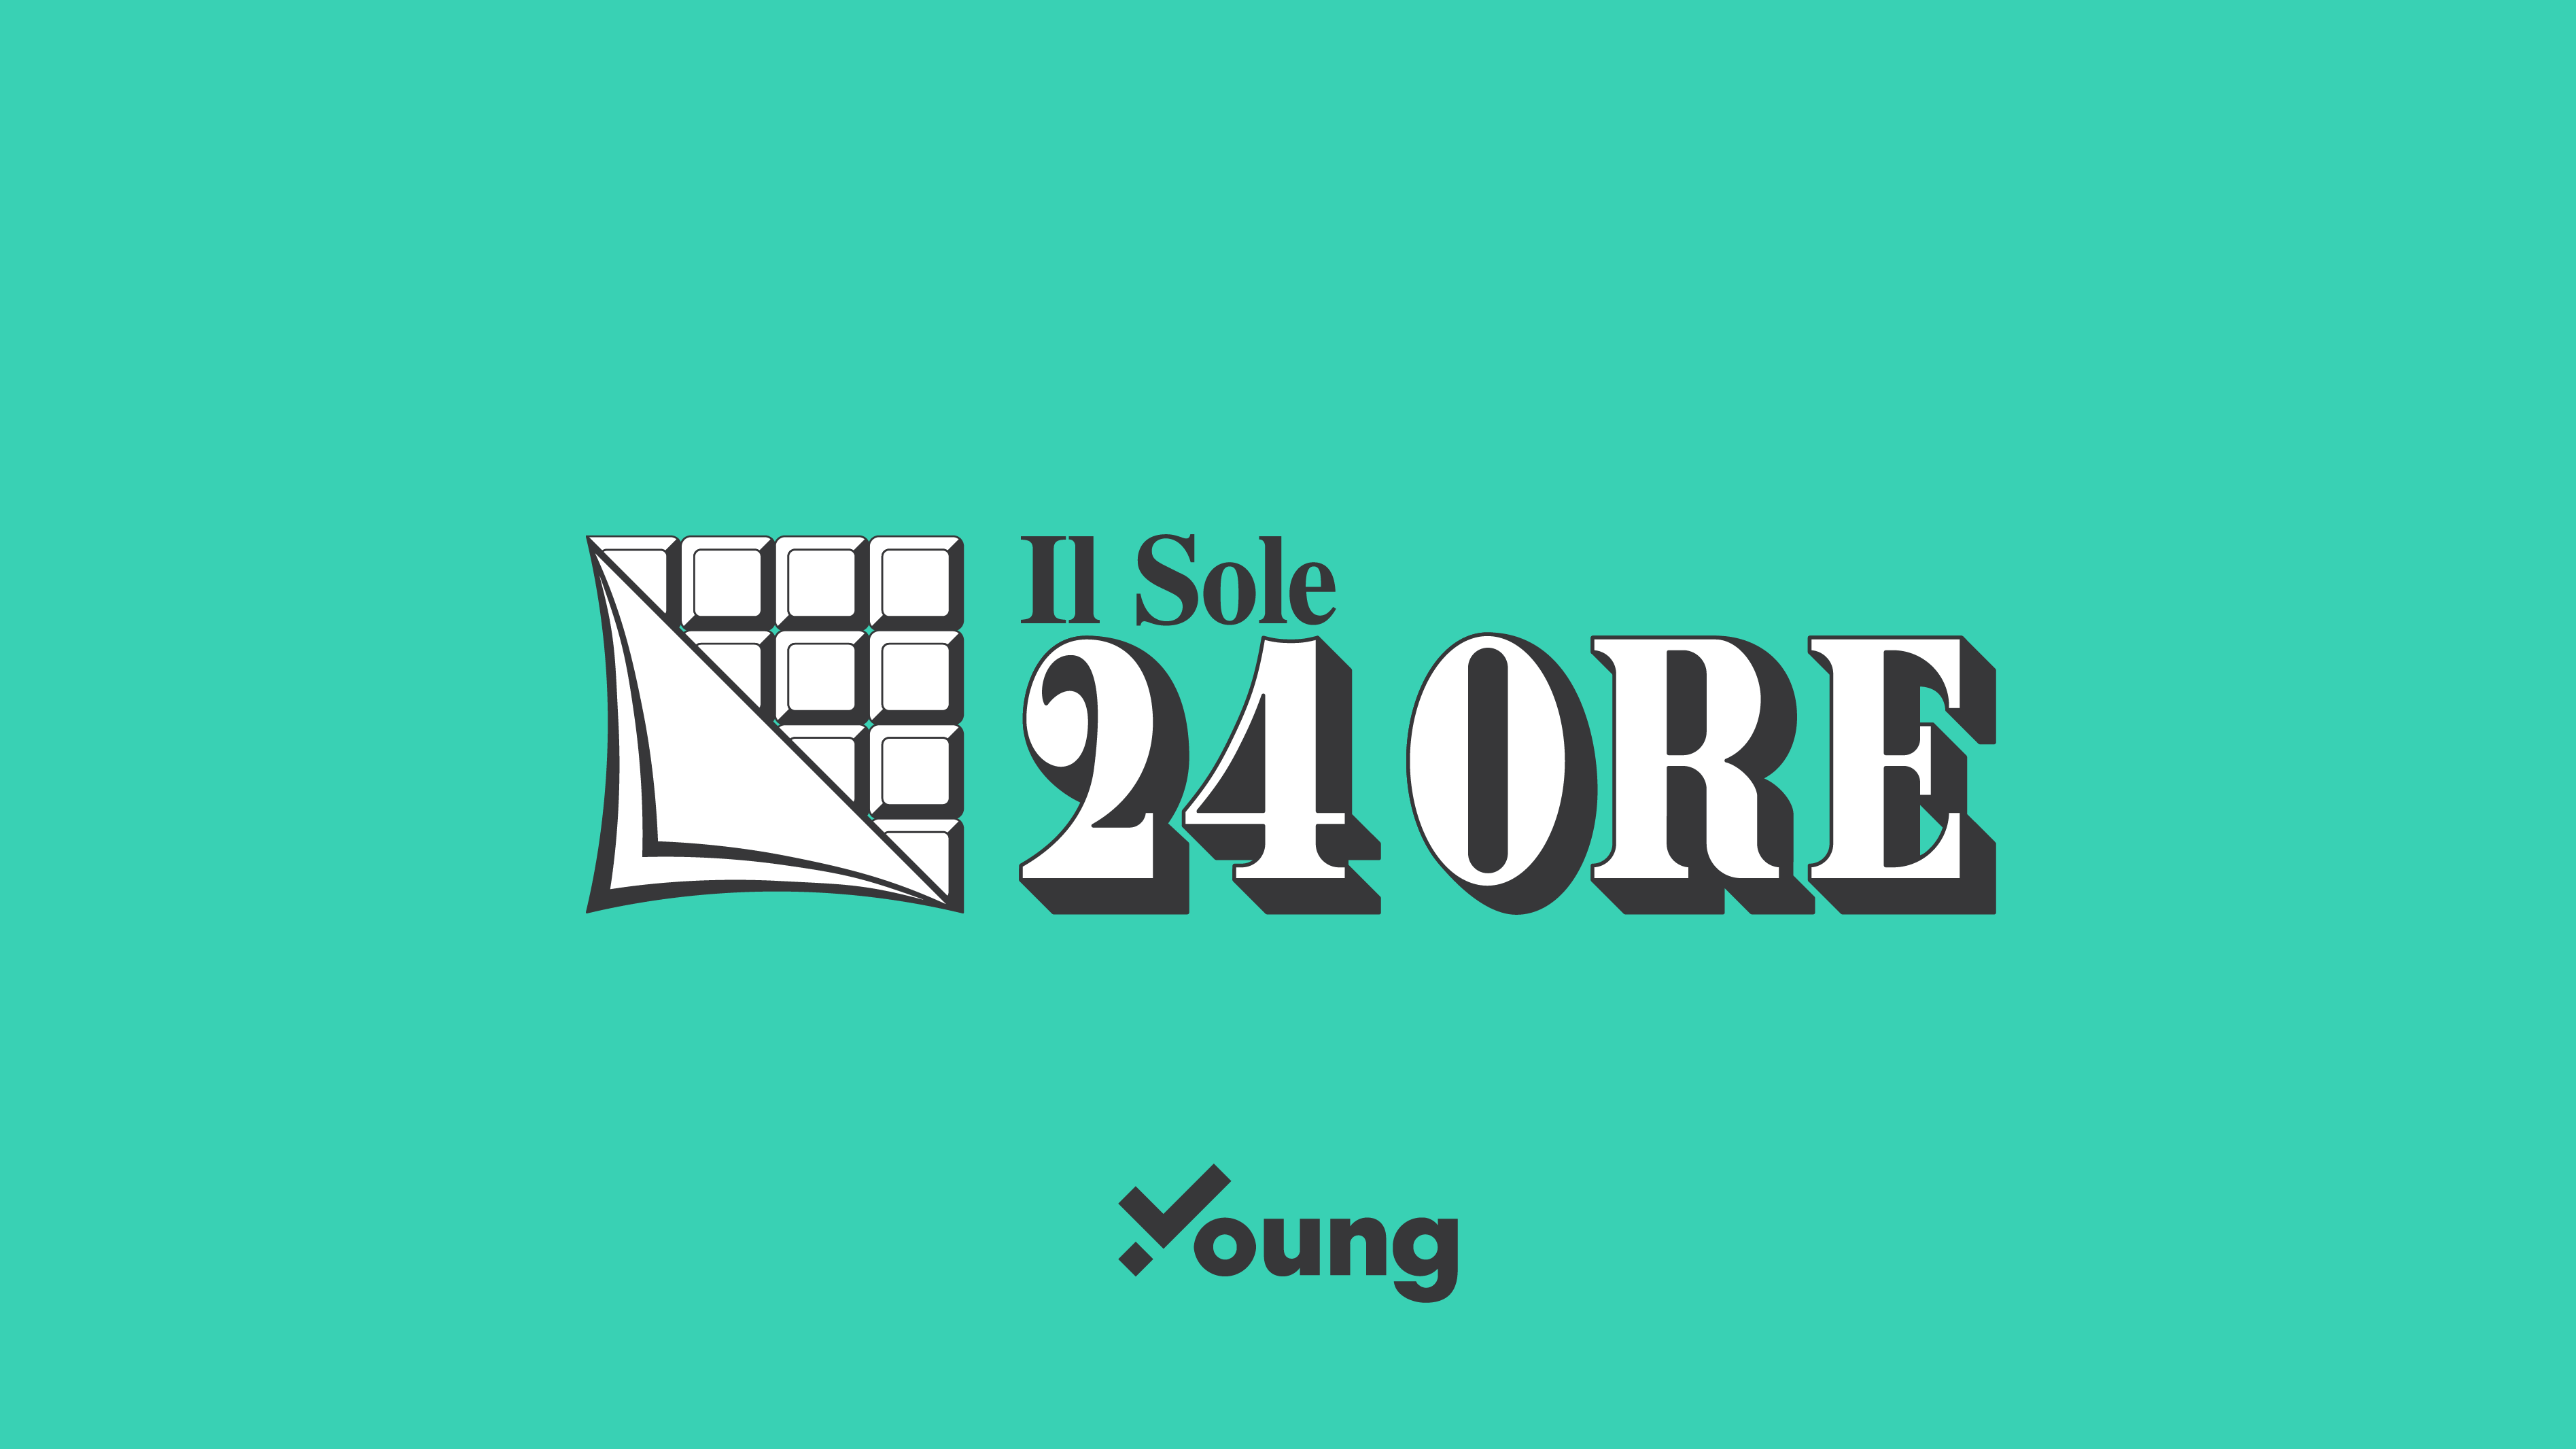 youngplatform_sole24ore